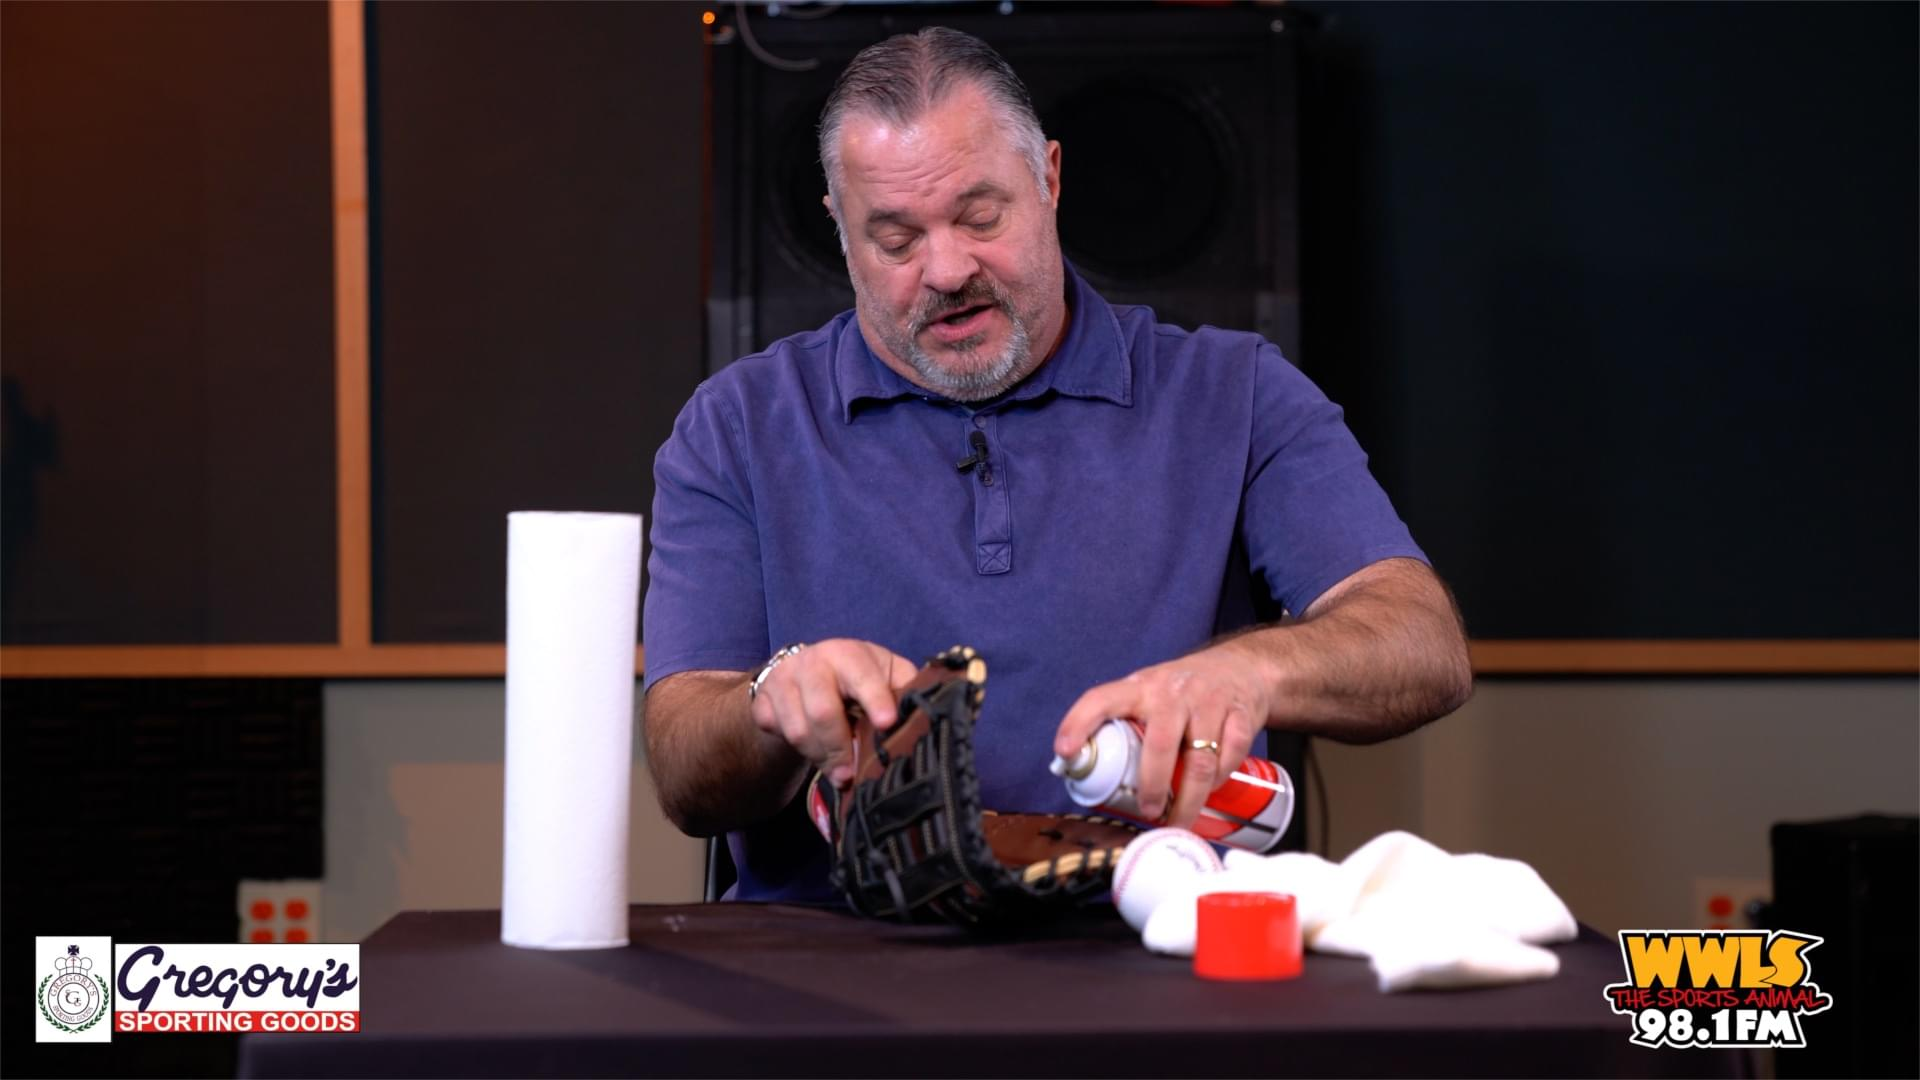 Jim Traber Explains How To Break In New Baseball Glove